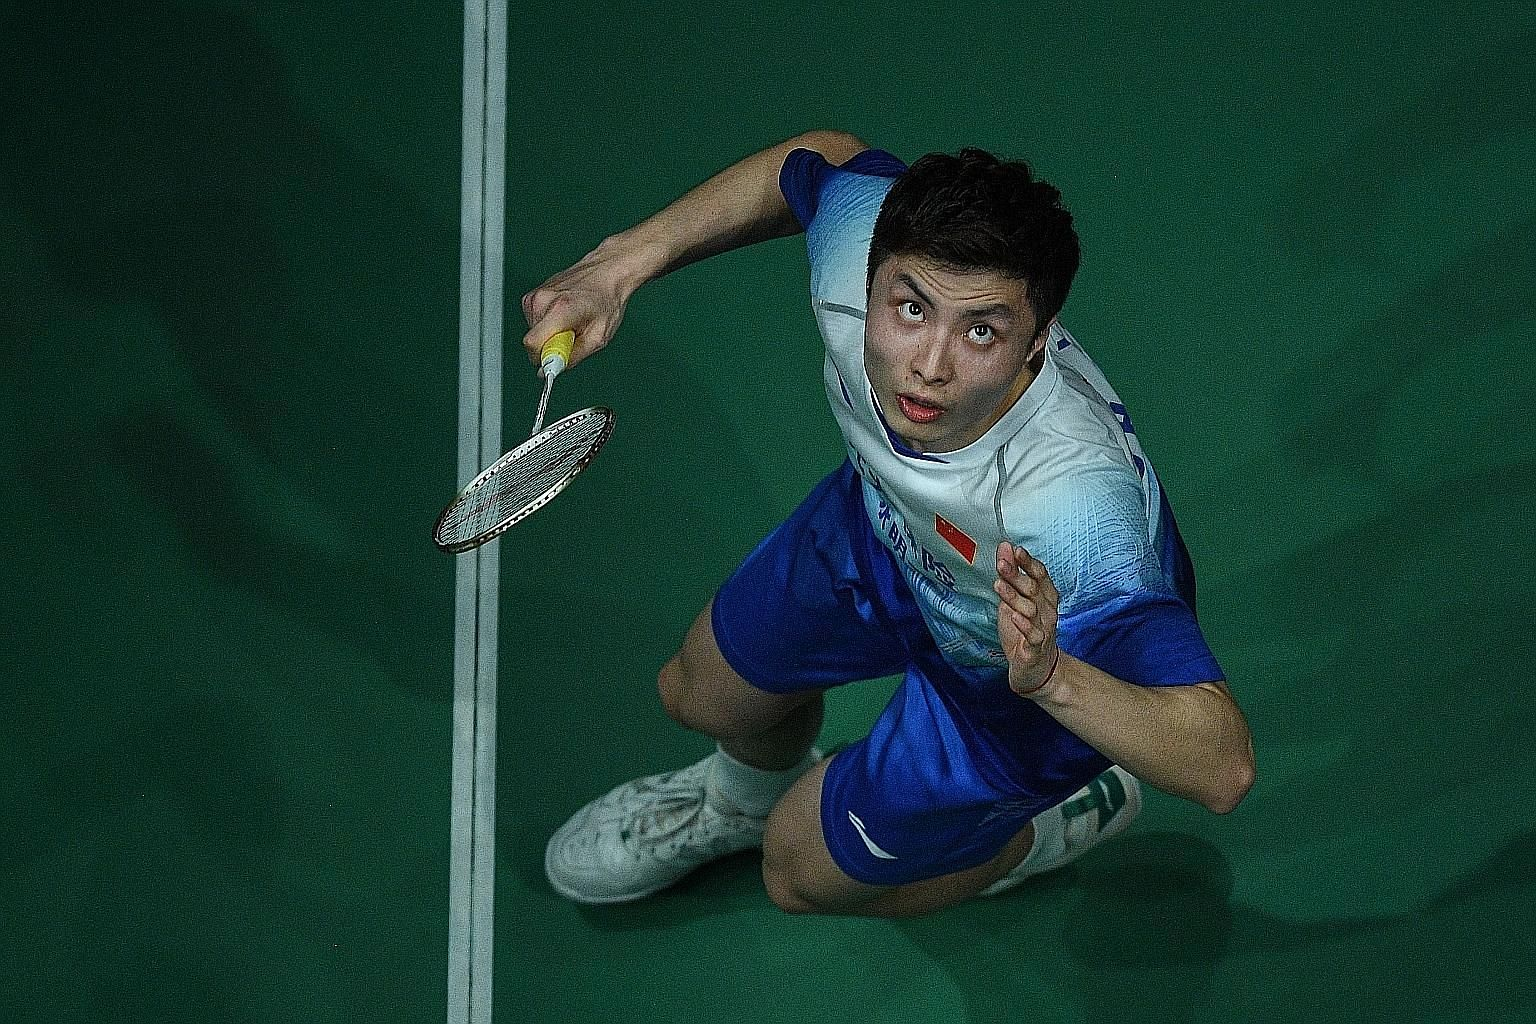 China's Olympic hope Shi Yuqi and his badminton teammates will not be barred from playing on the international circuit. PHOTO: AGENCE FRANCE-PRESSE